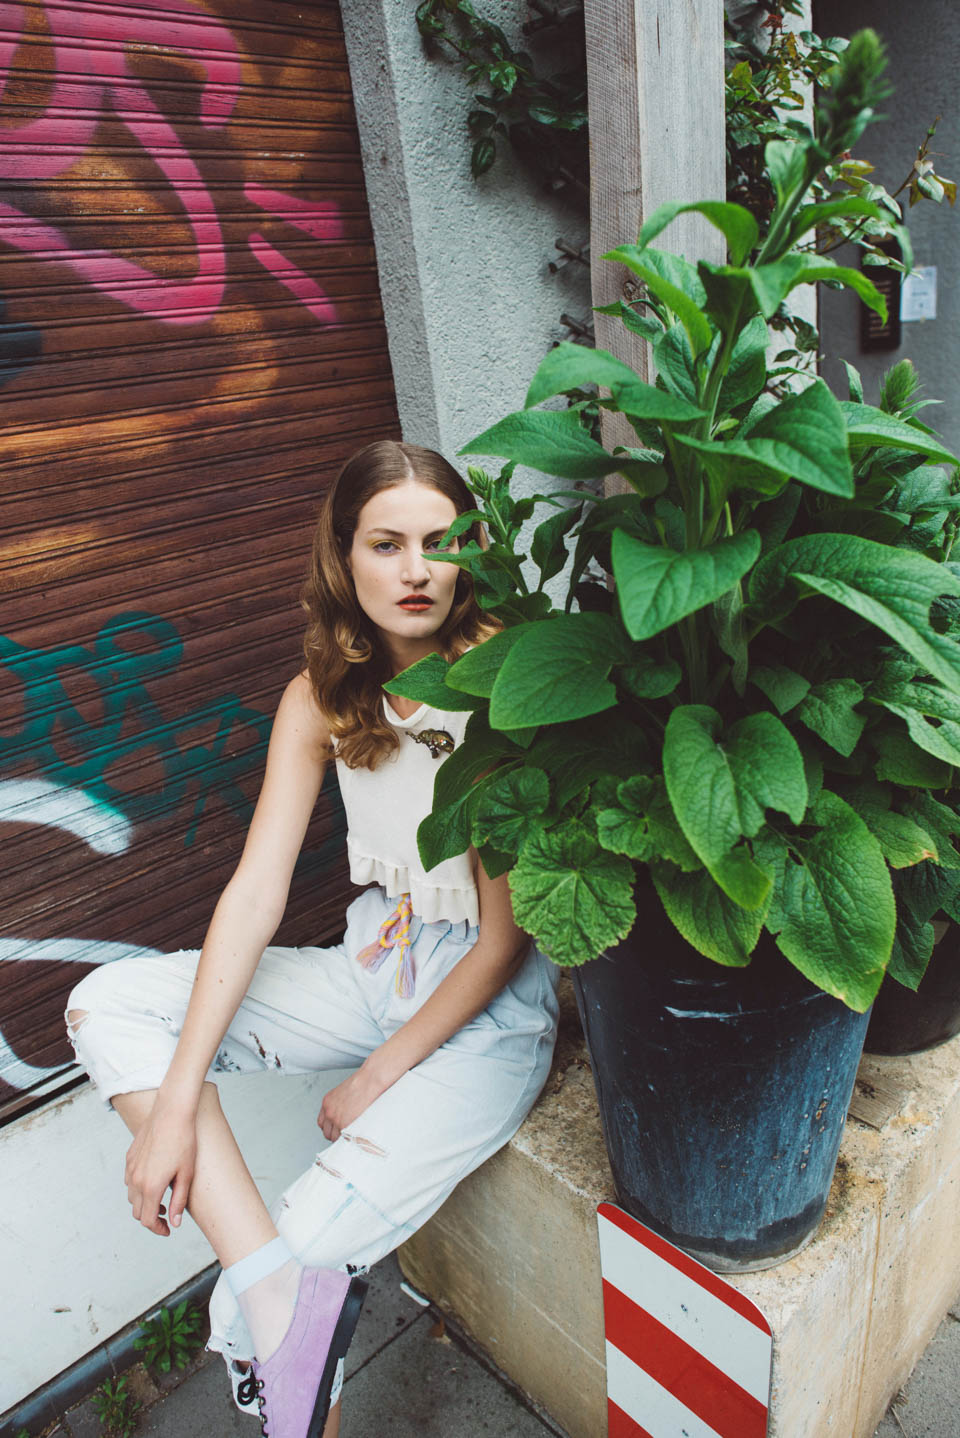 fashion editorial for cake magazine shot in cologne germany by fashion photographer erika astrid_27.jpg